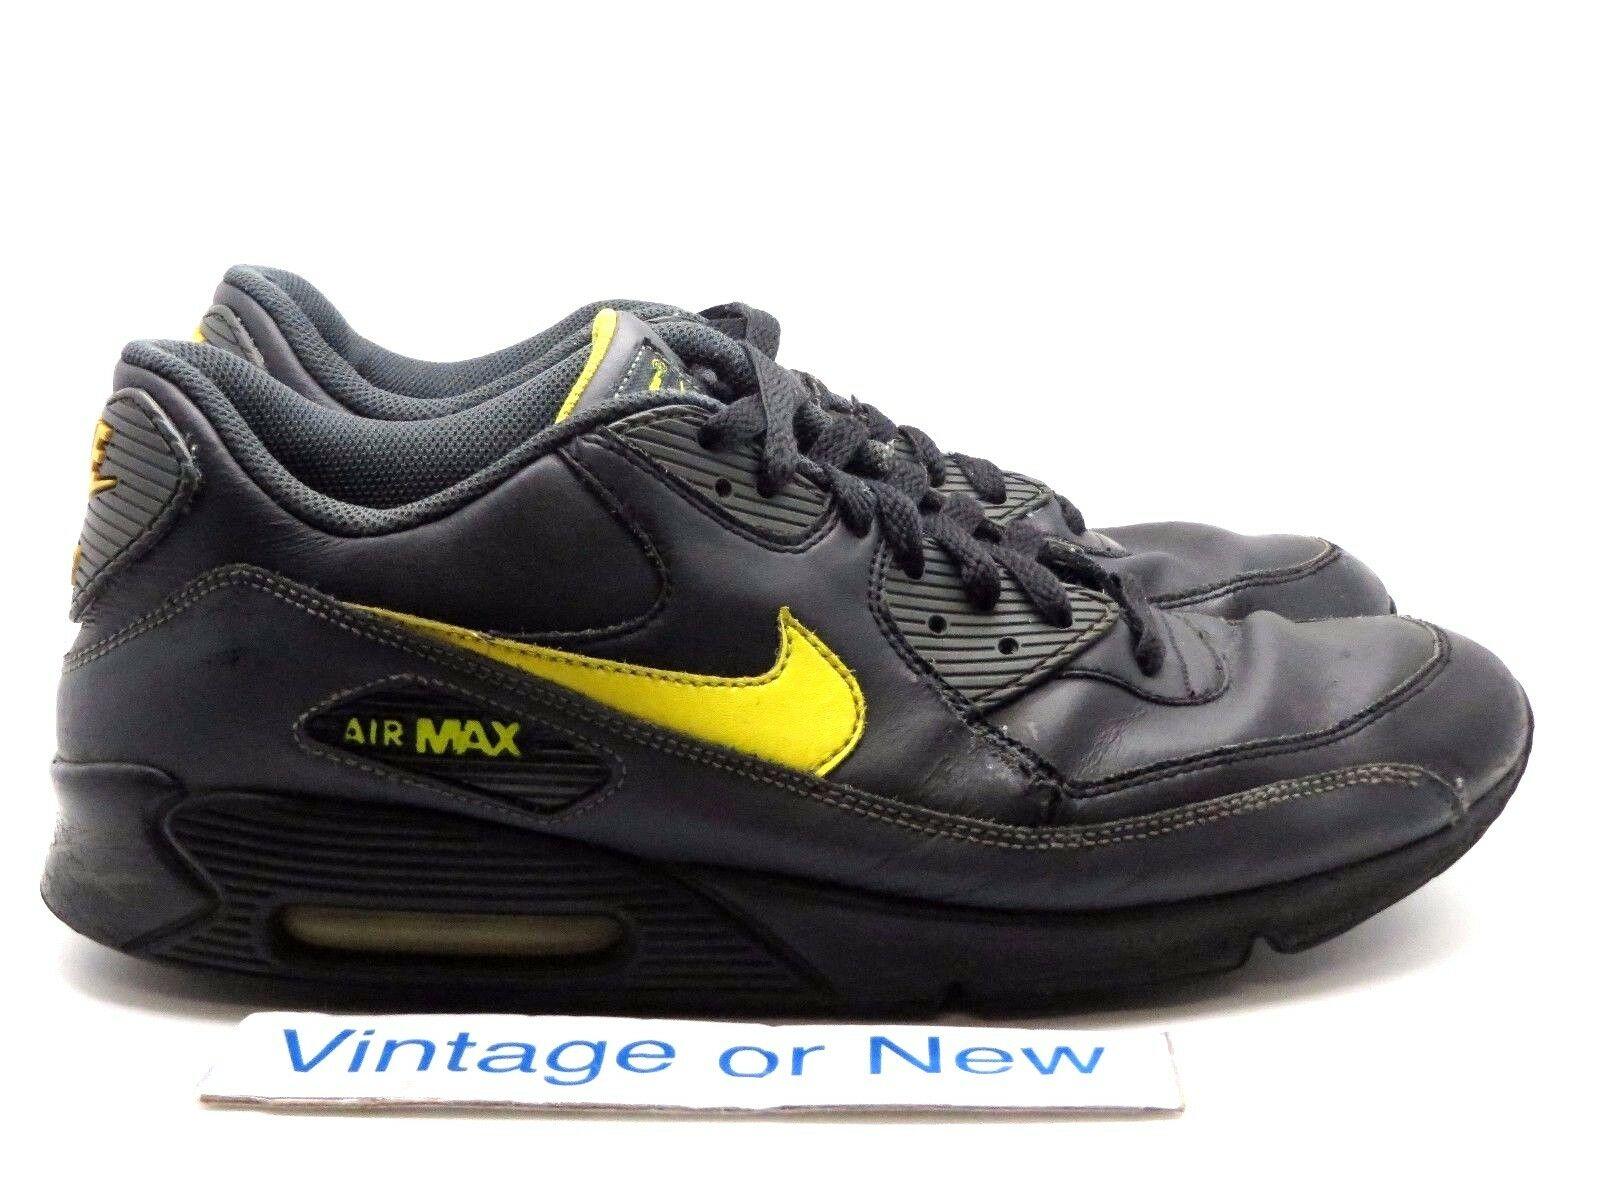 Men's Nike Air Max '90 Black Zest Anthracite Running Shoes 302519-073 sz 11.5